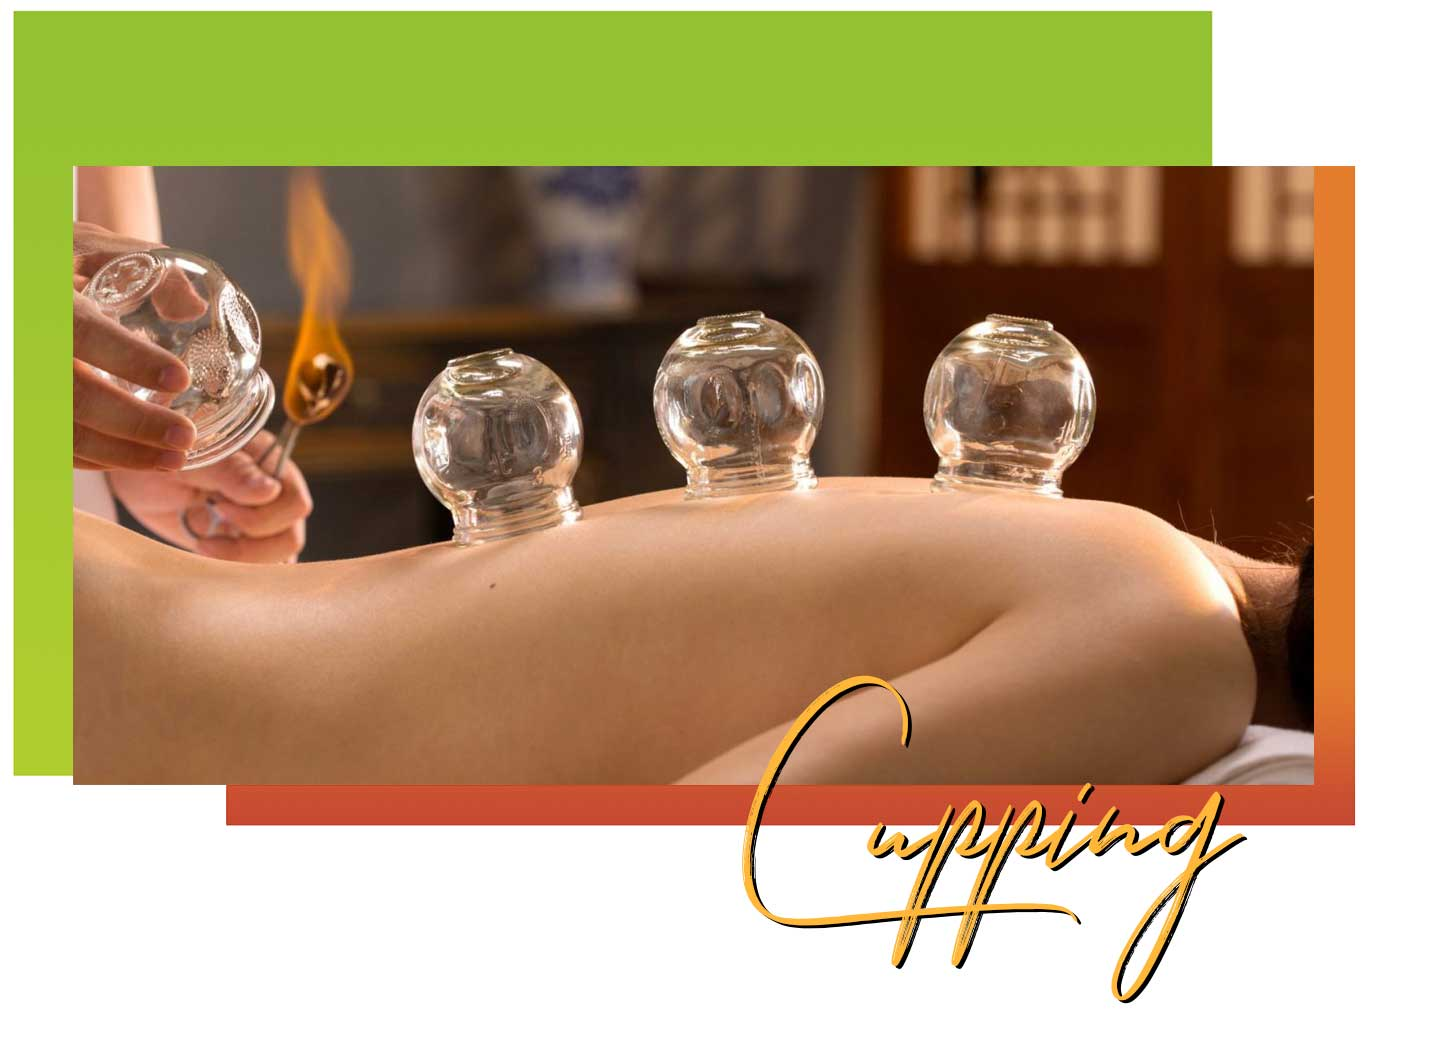 cupping chinese medicine acupuncture